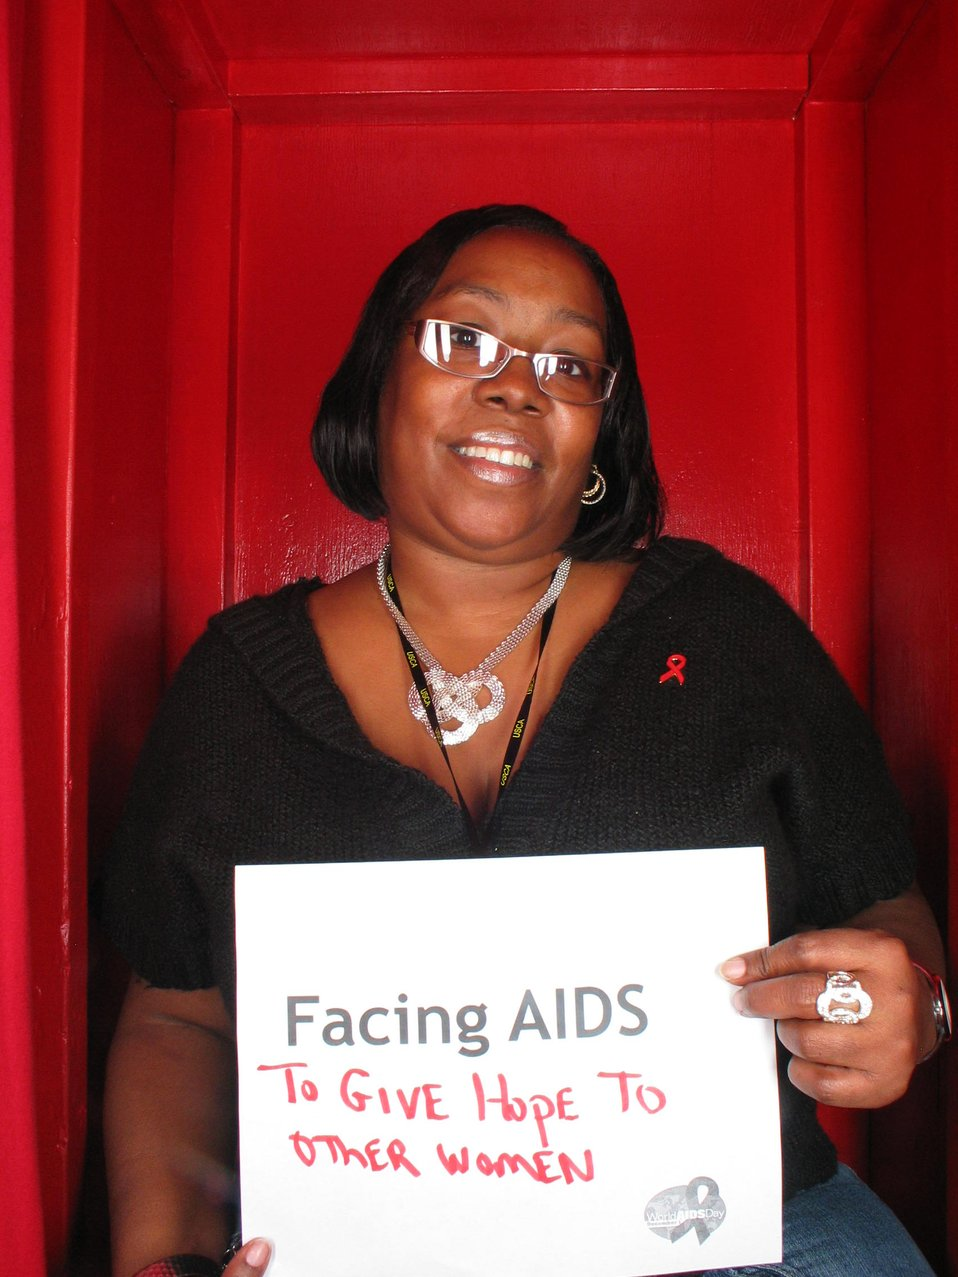 Facing AIDS to give hope to other women